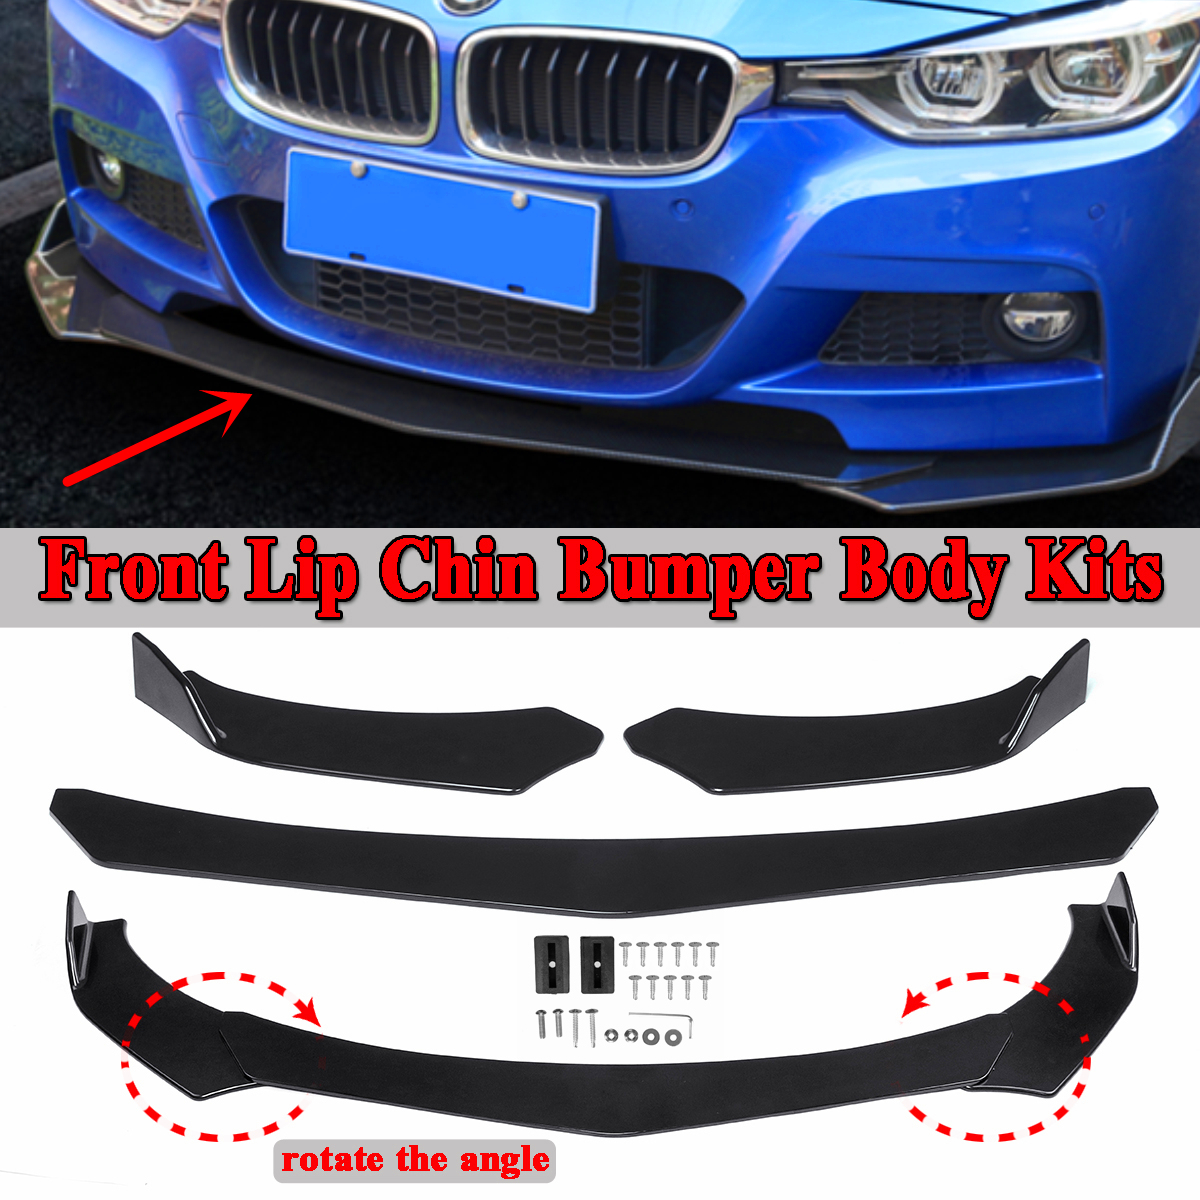 Mate Black Grille Grill For BMW E92 E93 3-Series 2 Door Coupe 10-13 Facelift UK